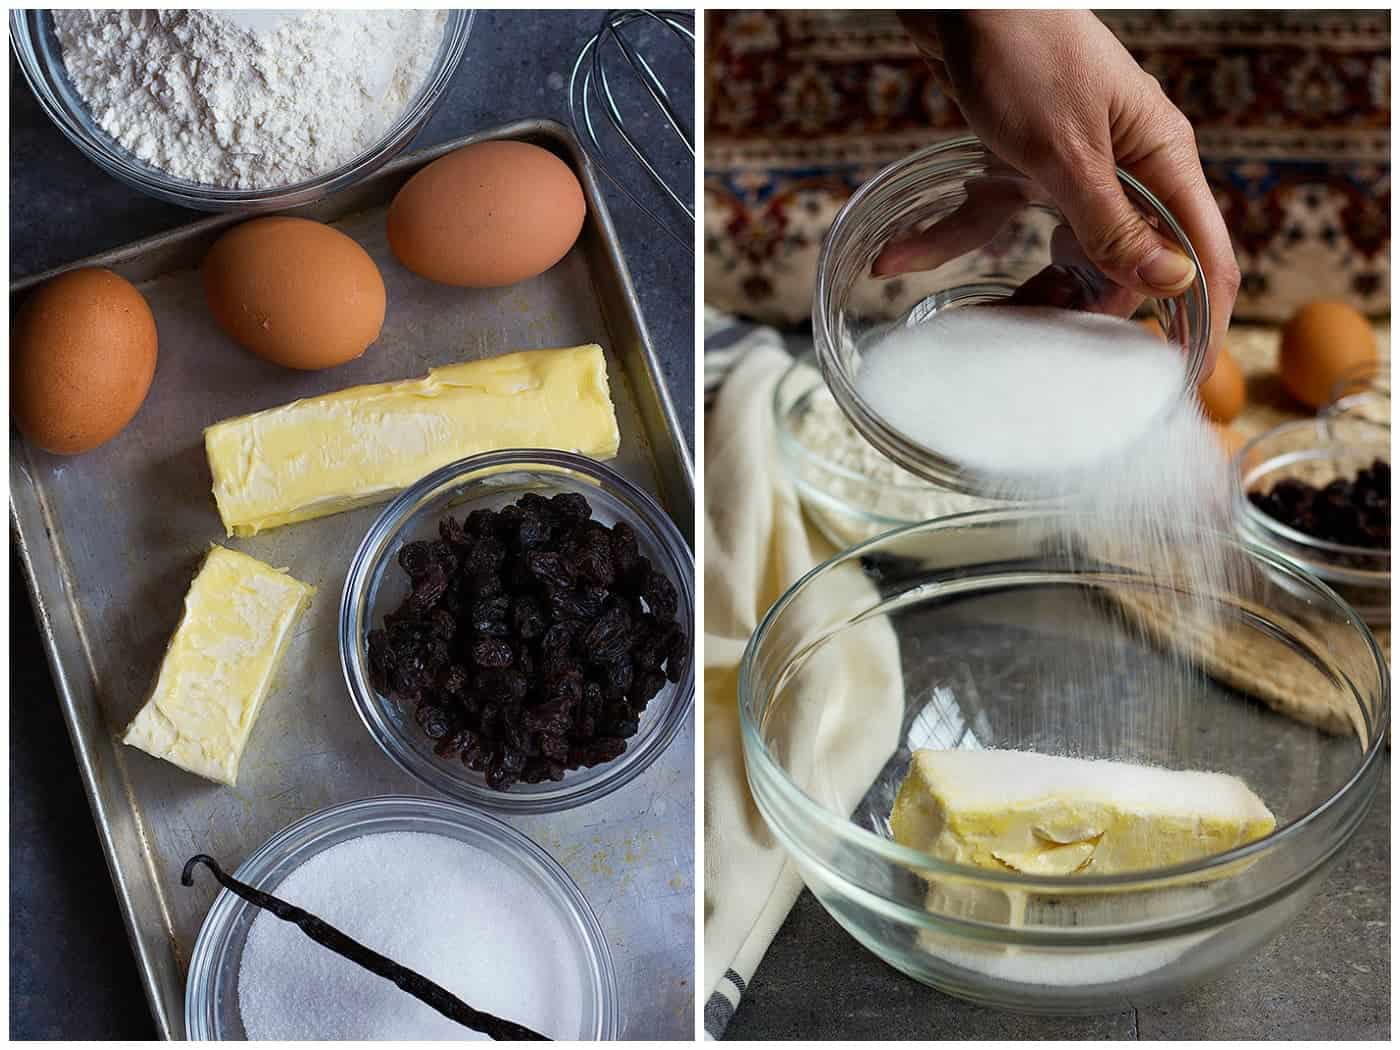 For making Persian Raisin Cookies you need eggs, butter, raisin, flour, sugar and vanilla. Mix butter and sugar in a large bowl.